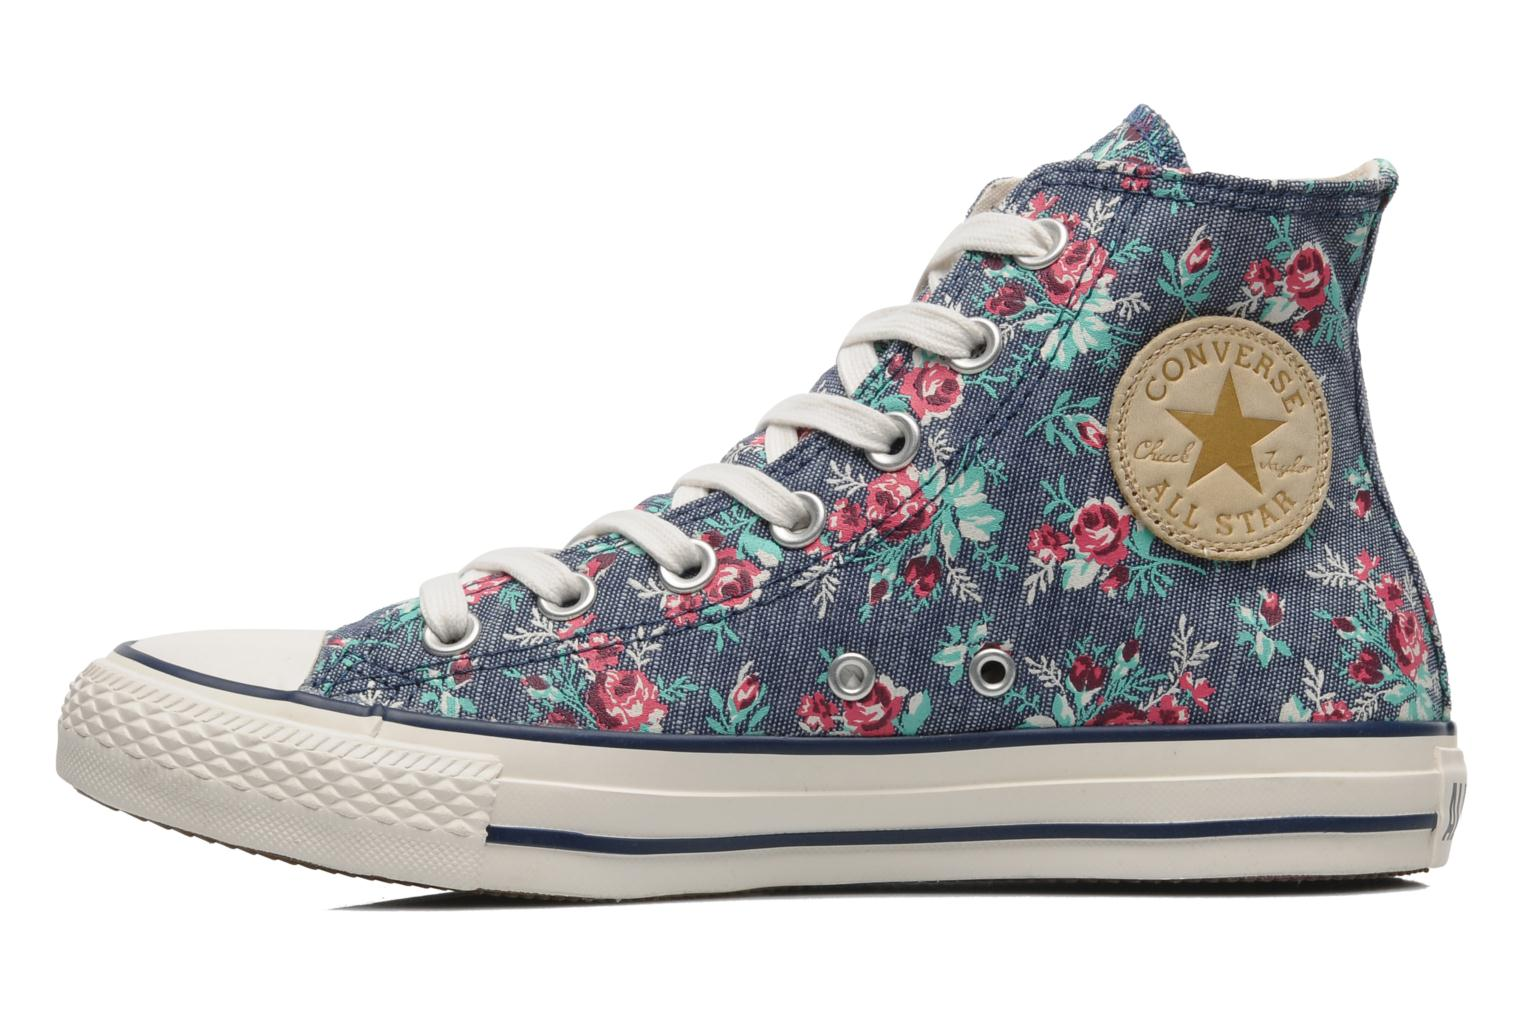 Chuck Taylor All Star Floral Print Hi W Denim Floral